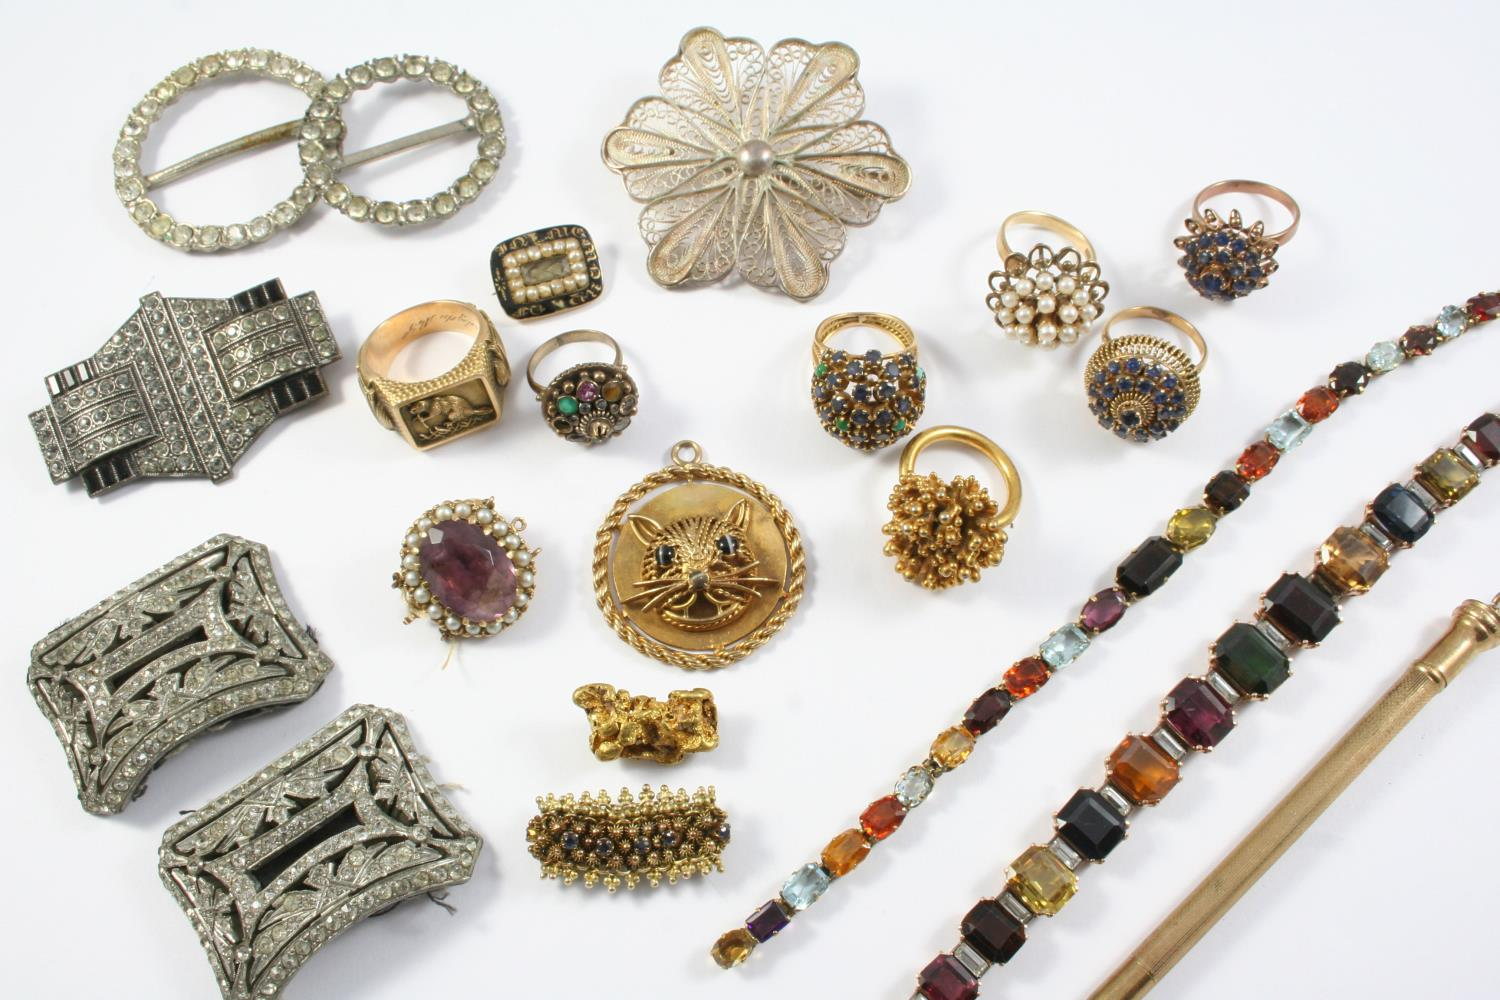 A QUANTITY OF JEWELLERY IN TAN LEATHER JEWELLERY BOX including a gold nugget brooch, 8.5 grams, a